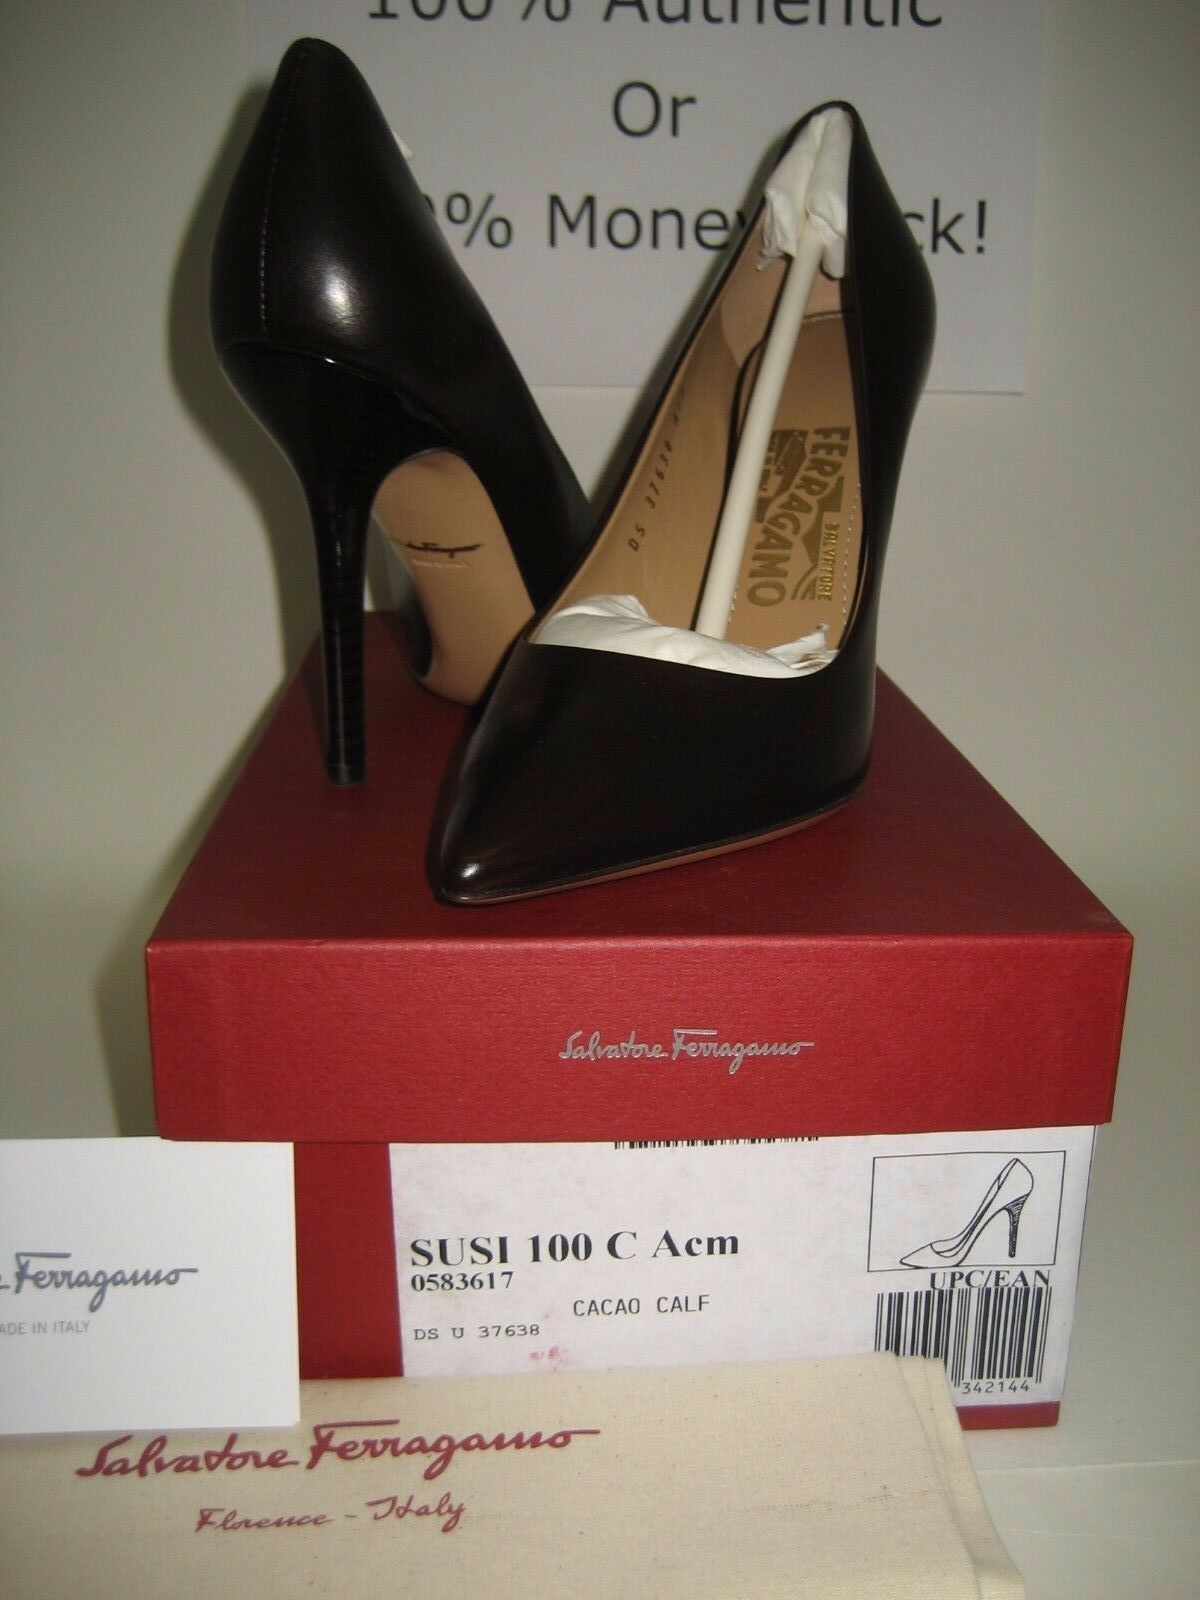 575 NEW Salvatore Ferragamo Susi Brown Leather Point Toe Pumps High Heels shoes